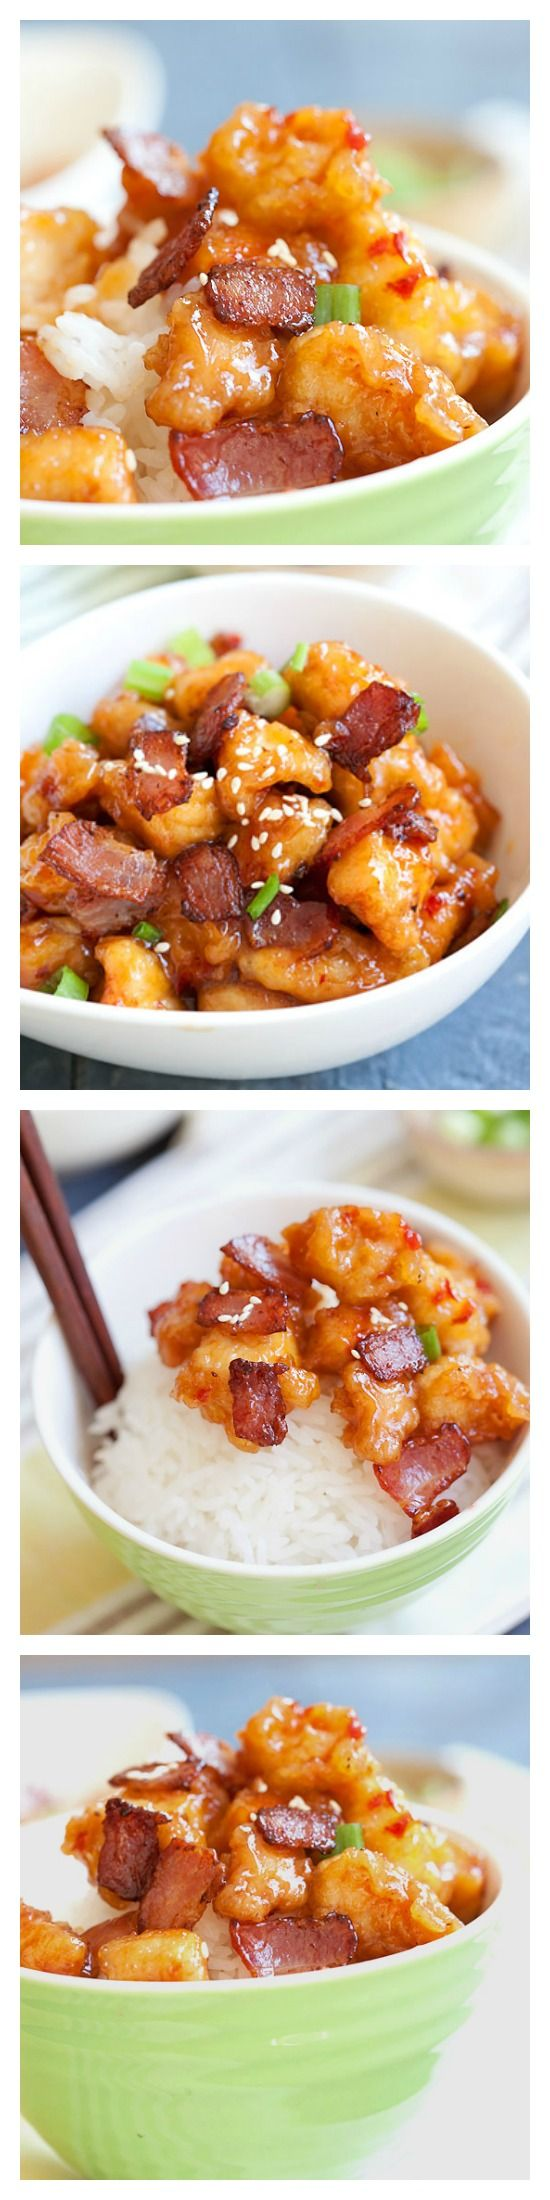 Panda Express Orange Chicken with Bacon Copycat recipe. Make it at home in 20 minutes! http://rasamalaysia.com